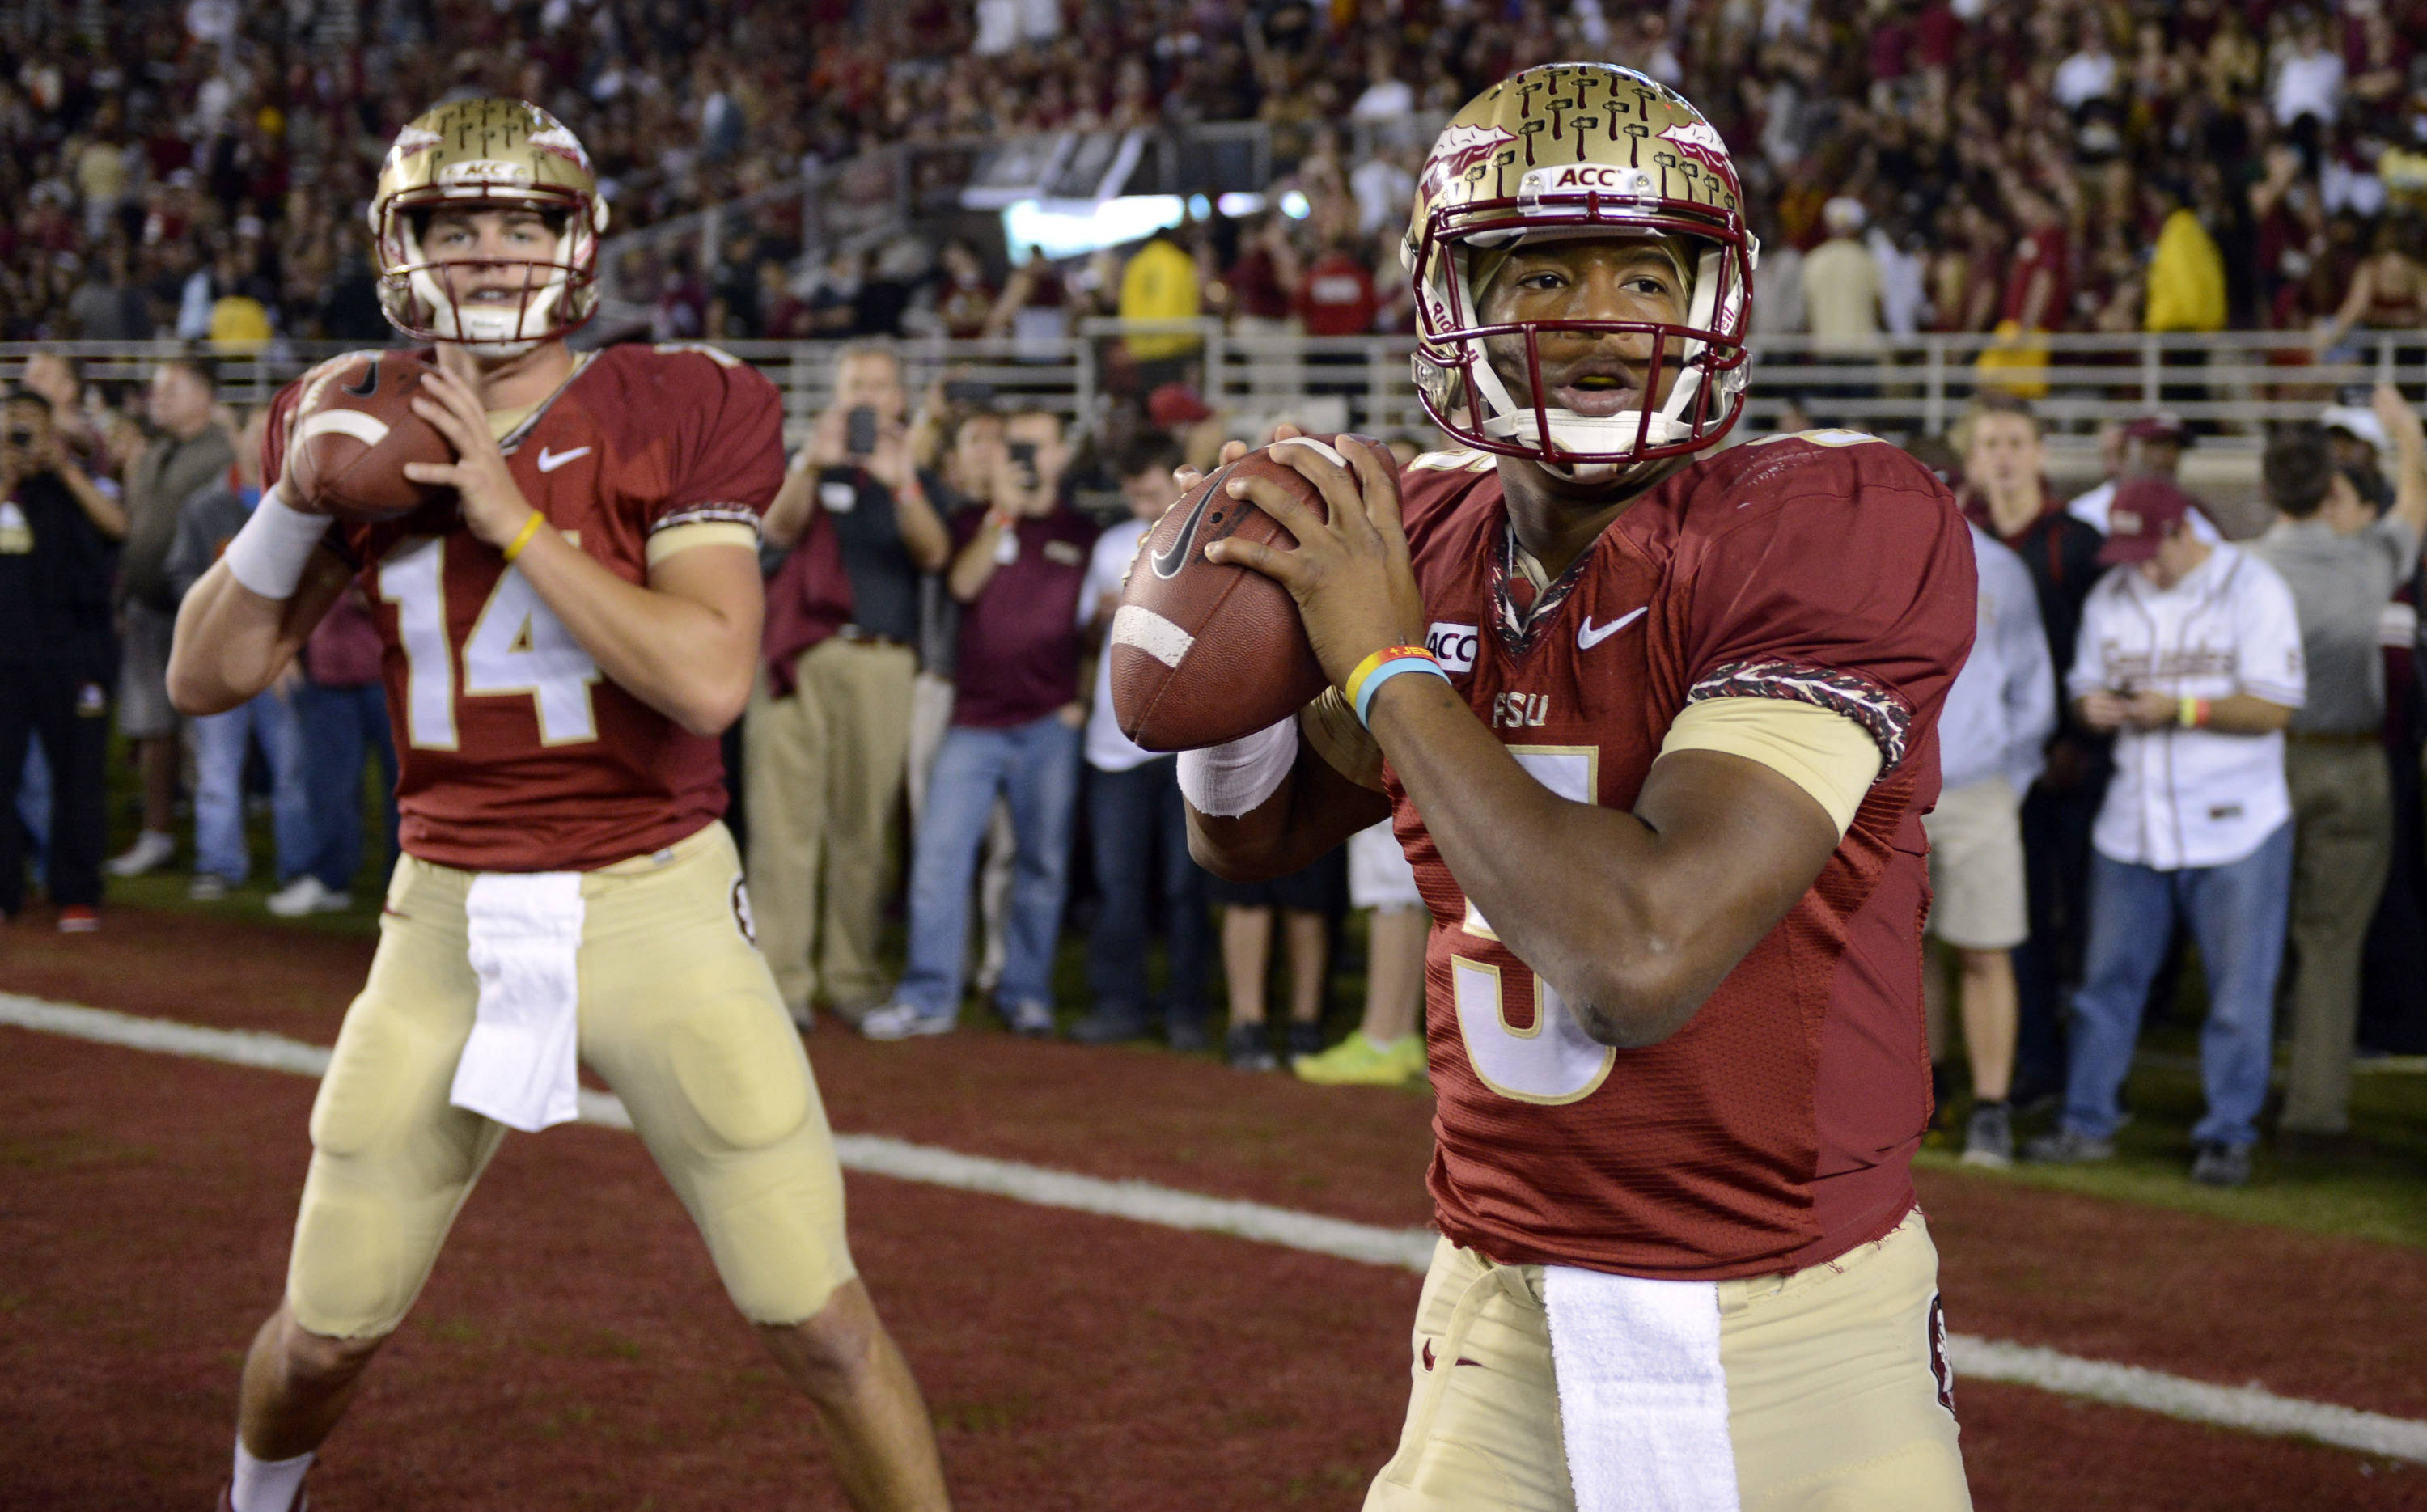 Florida State Seminoles quarterback Jameis Winston (5) during pre game warm ups before the game against the Miami Hurricanes at Doak Campbell Stadium. Mandatory Credit: John David Mercer-USA TODAY Sports